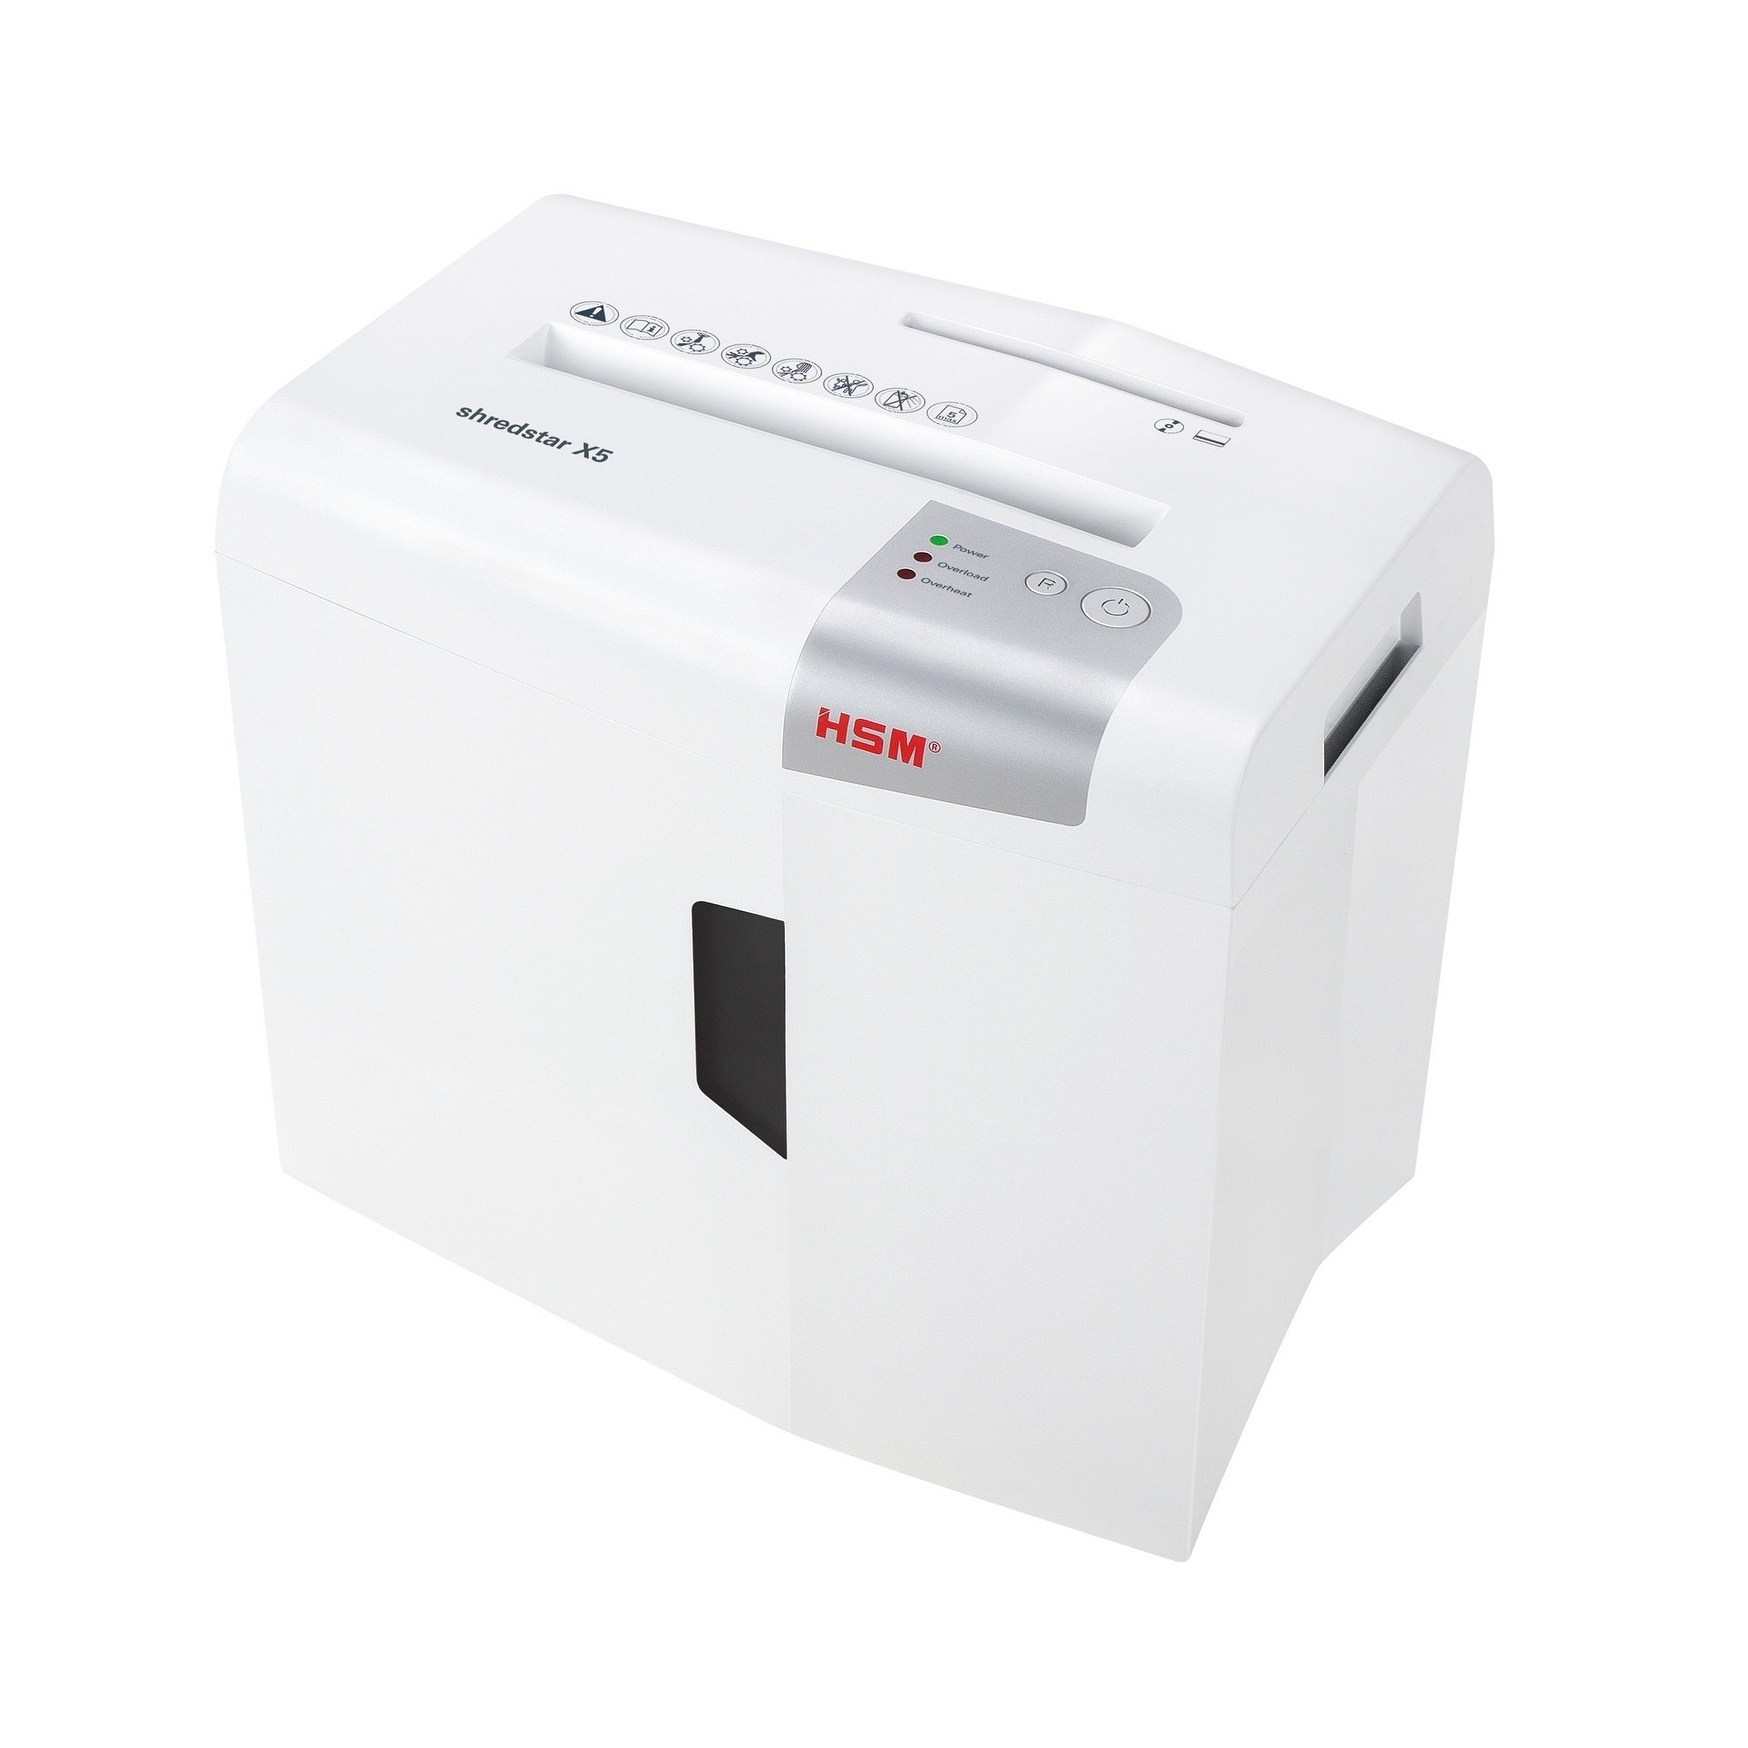 HSM of America HSM shredstar X5 Cross-Cut Shredder; shreds up to 5 sheets; 4.8-gallon capacity